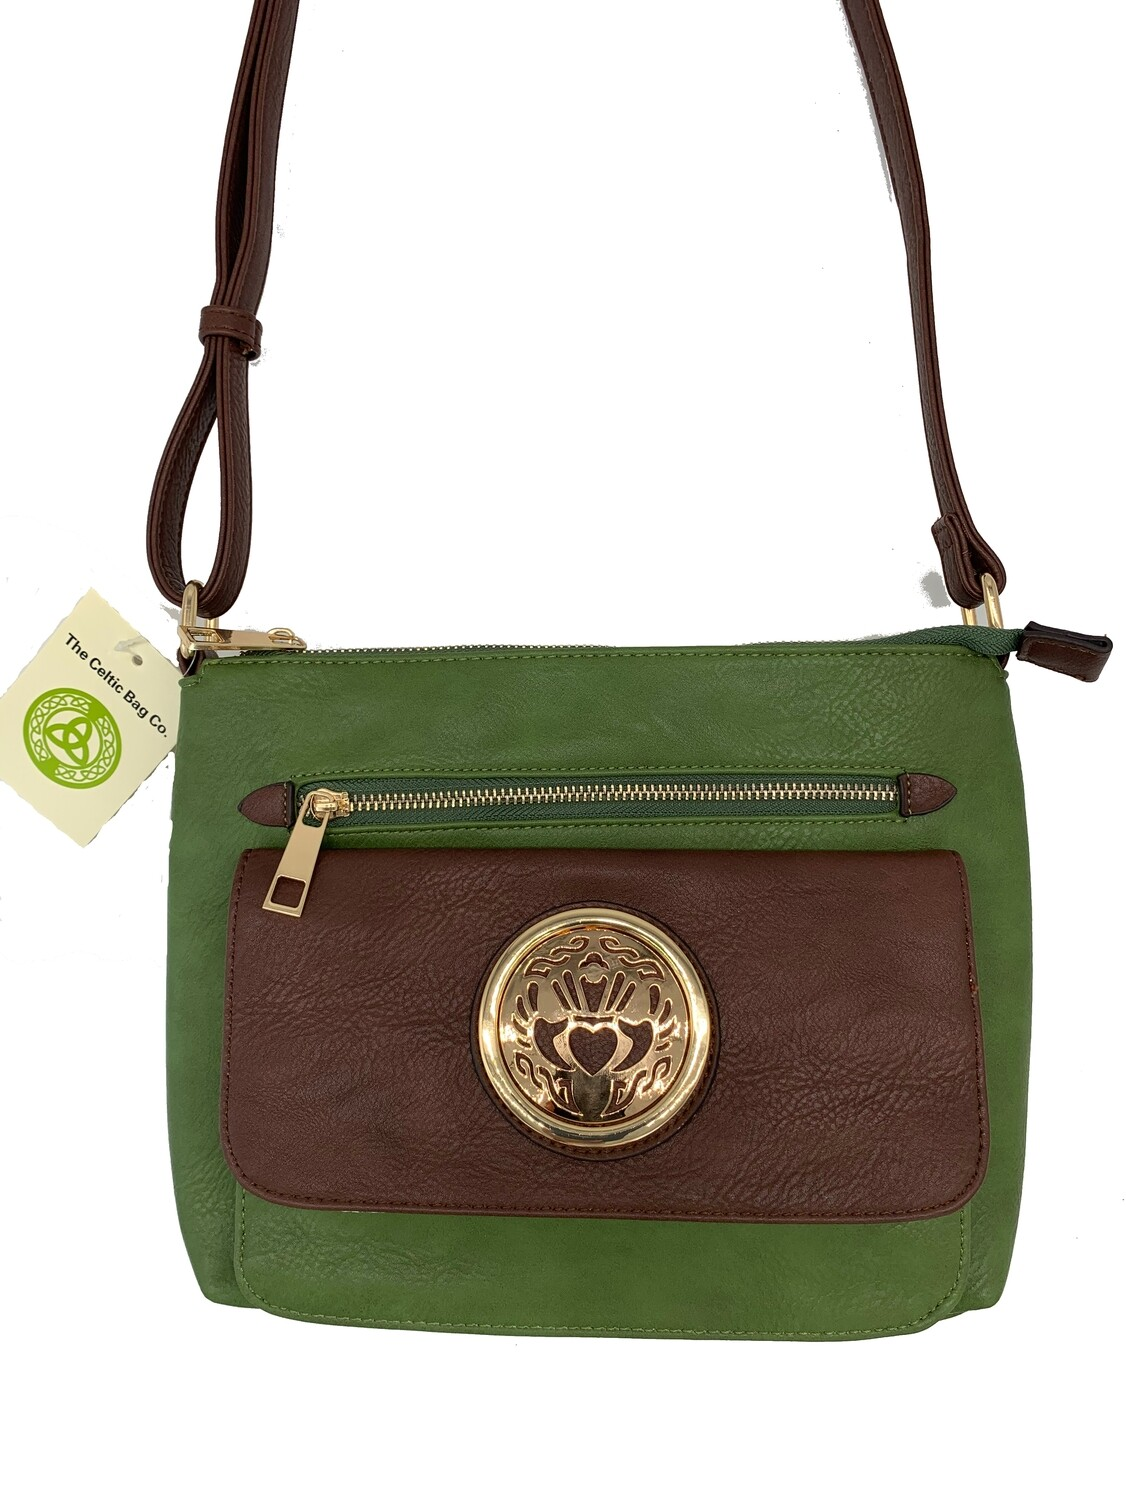 155 Two Tone Pocket Bag Olive Green